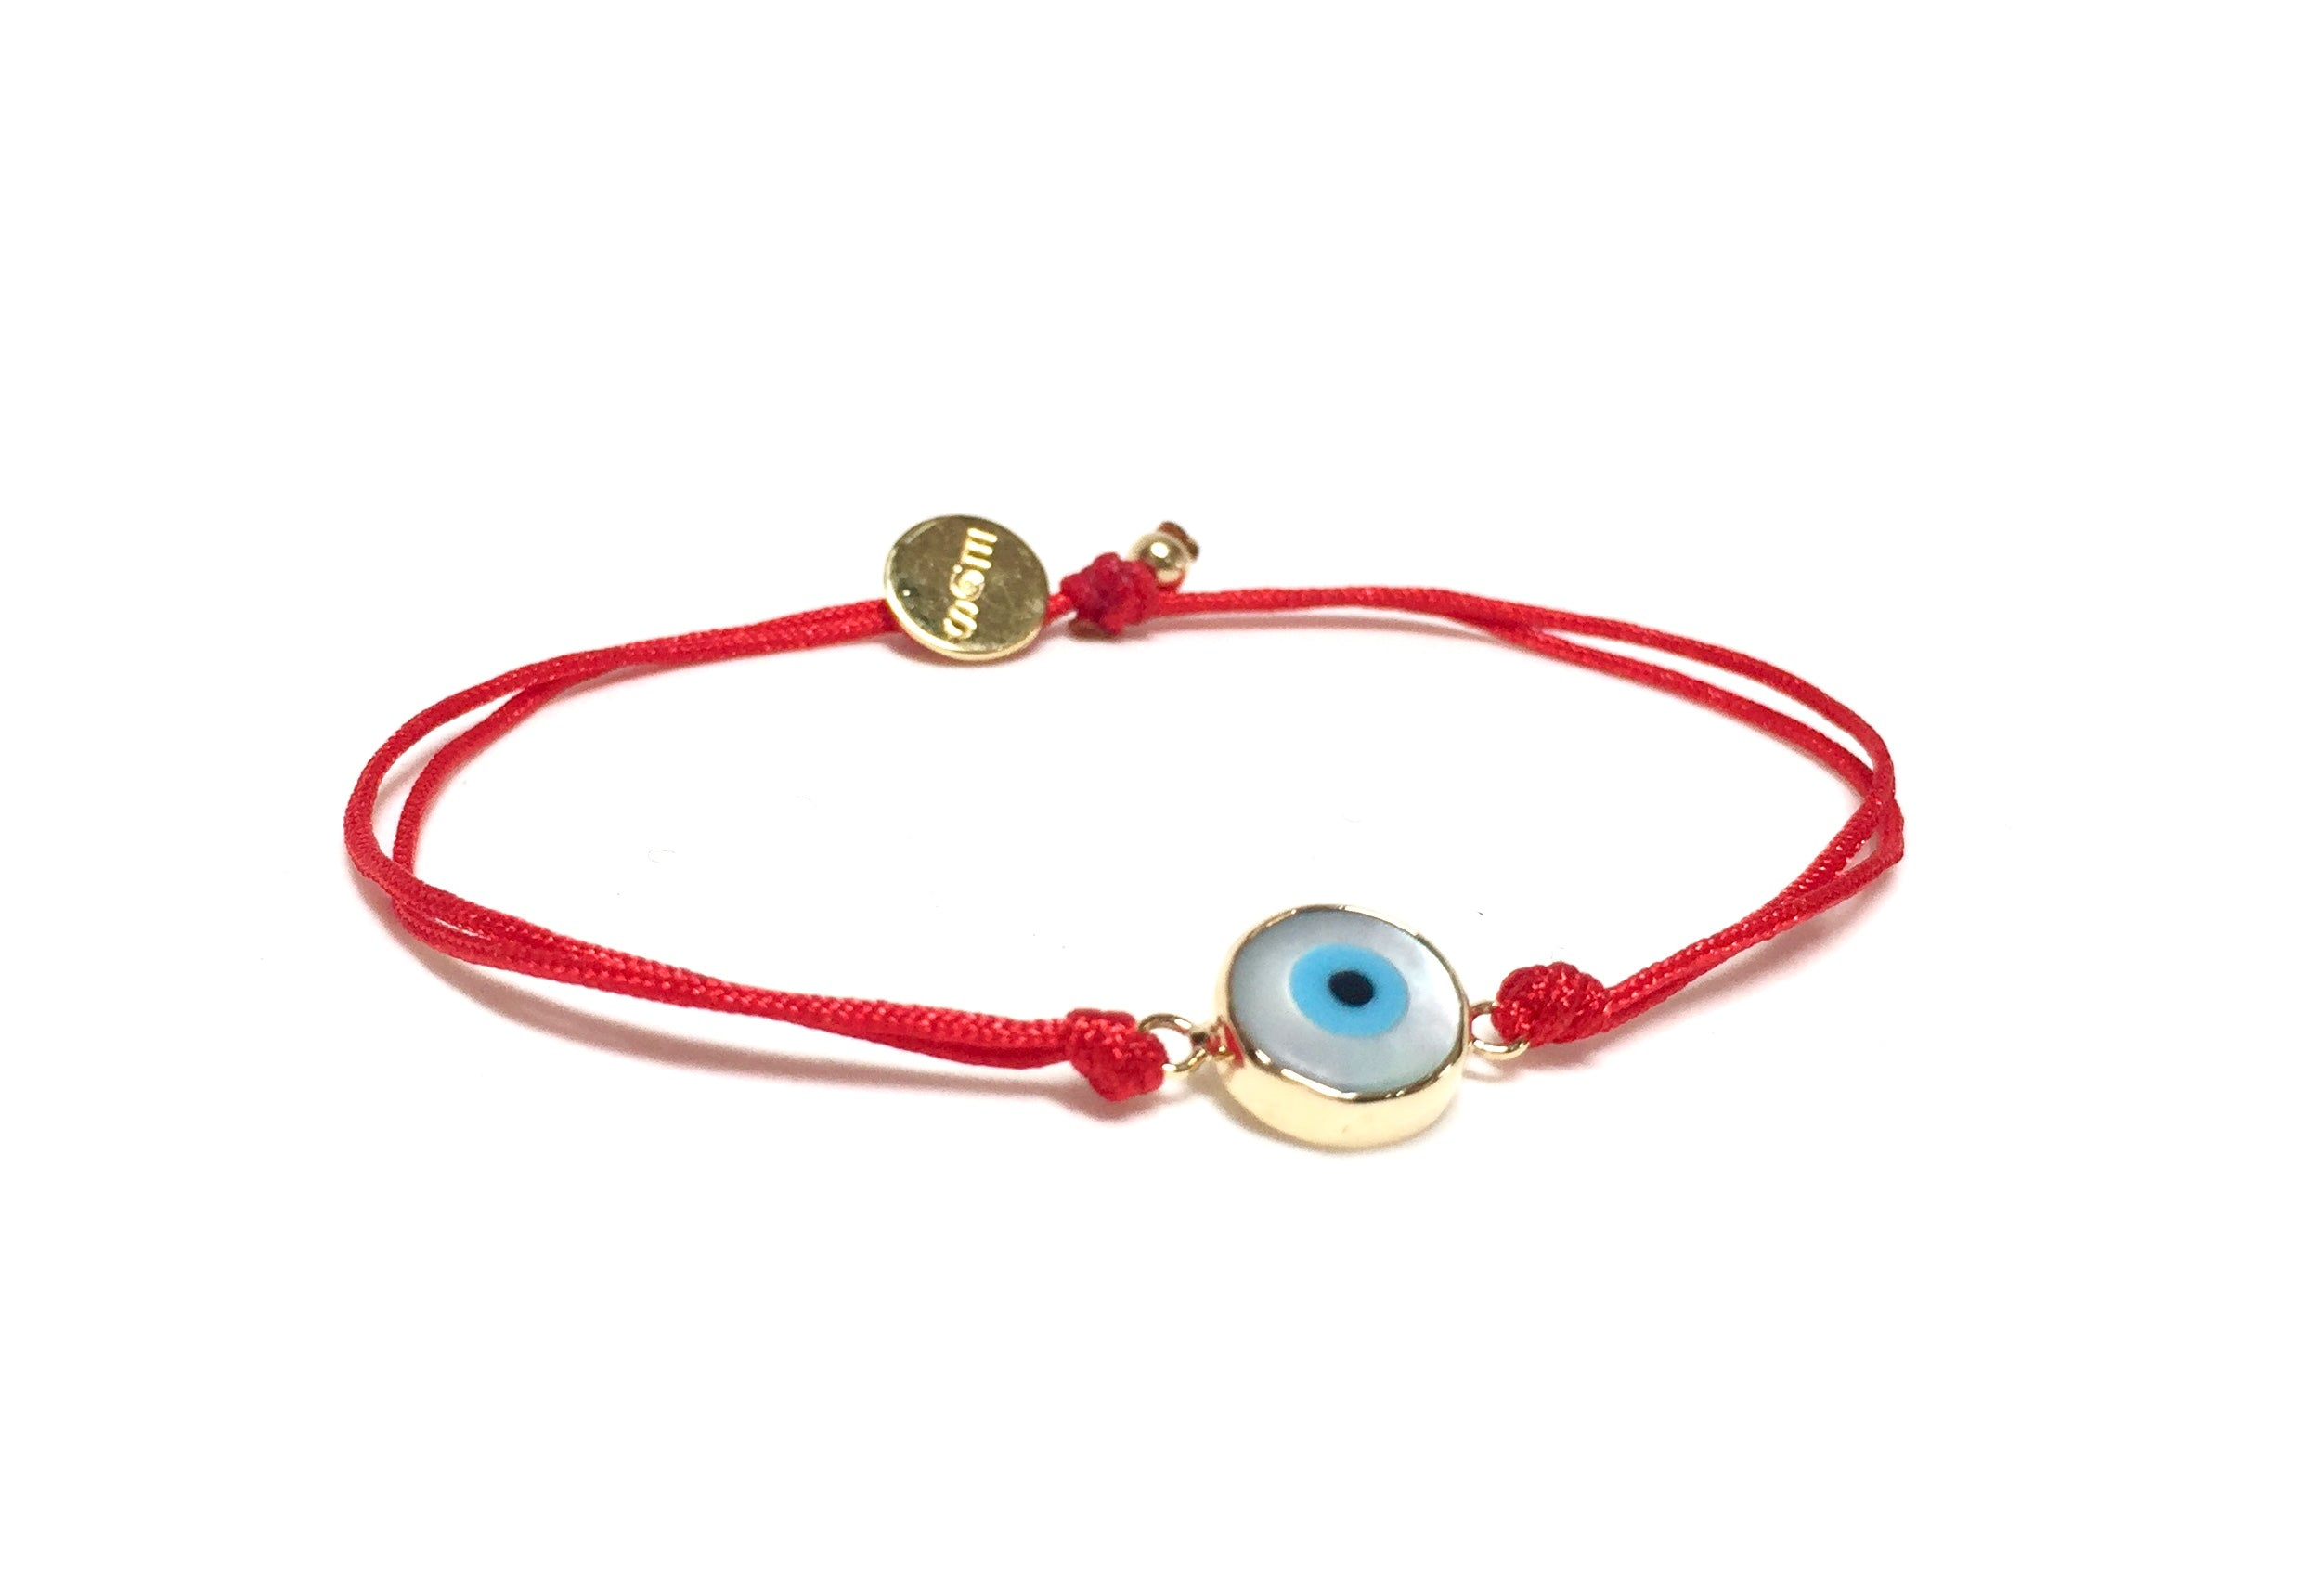 inicio hamsa anil gold mini jewels bracelet rose arjandas red